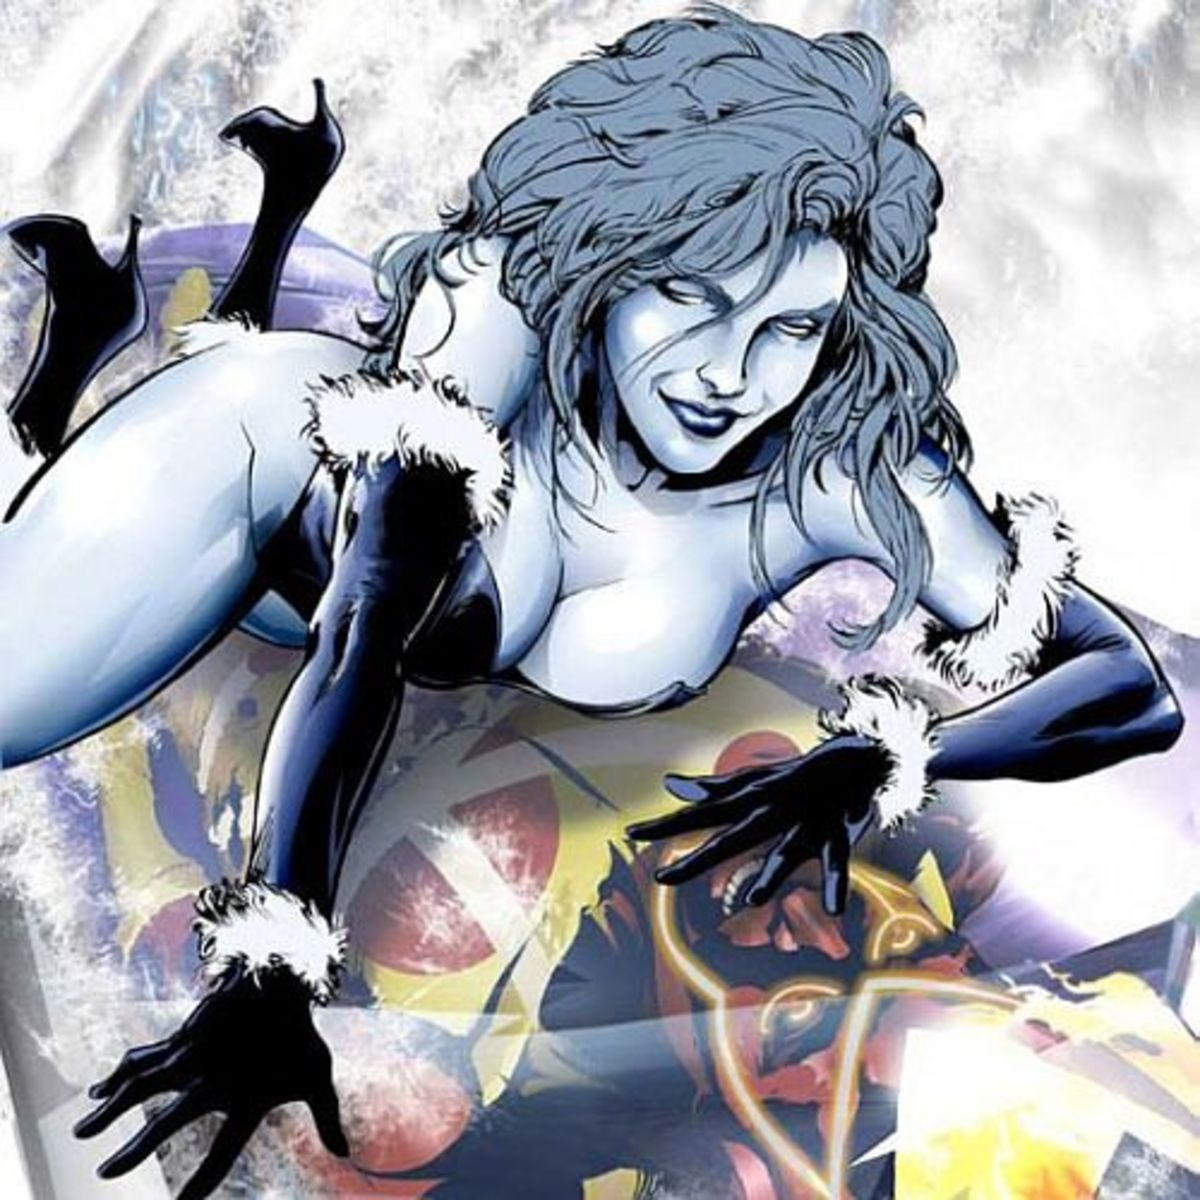 Killer Frost—A chilling psychotic feeding on warmth.